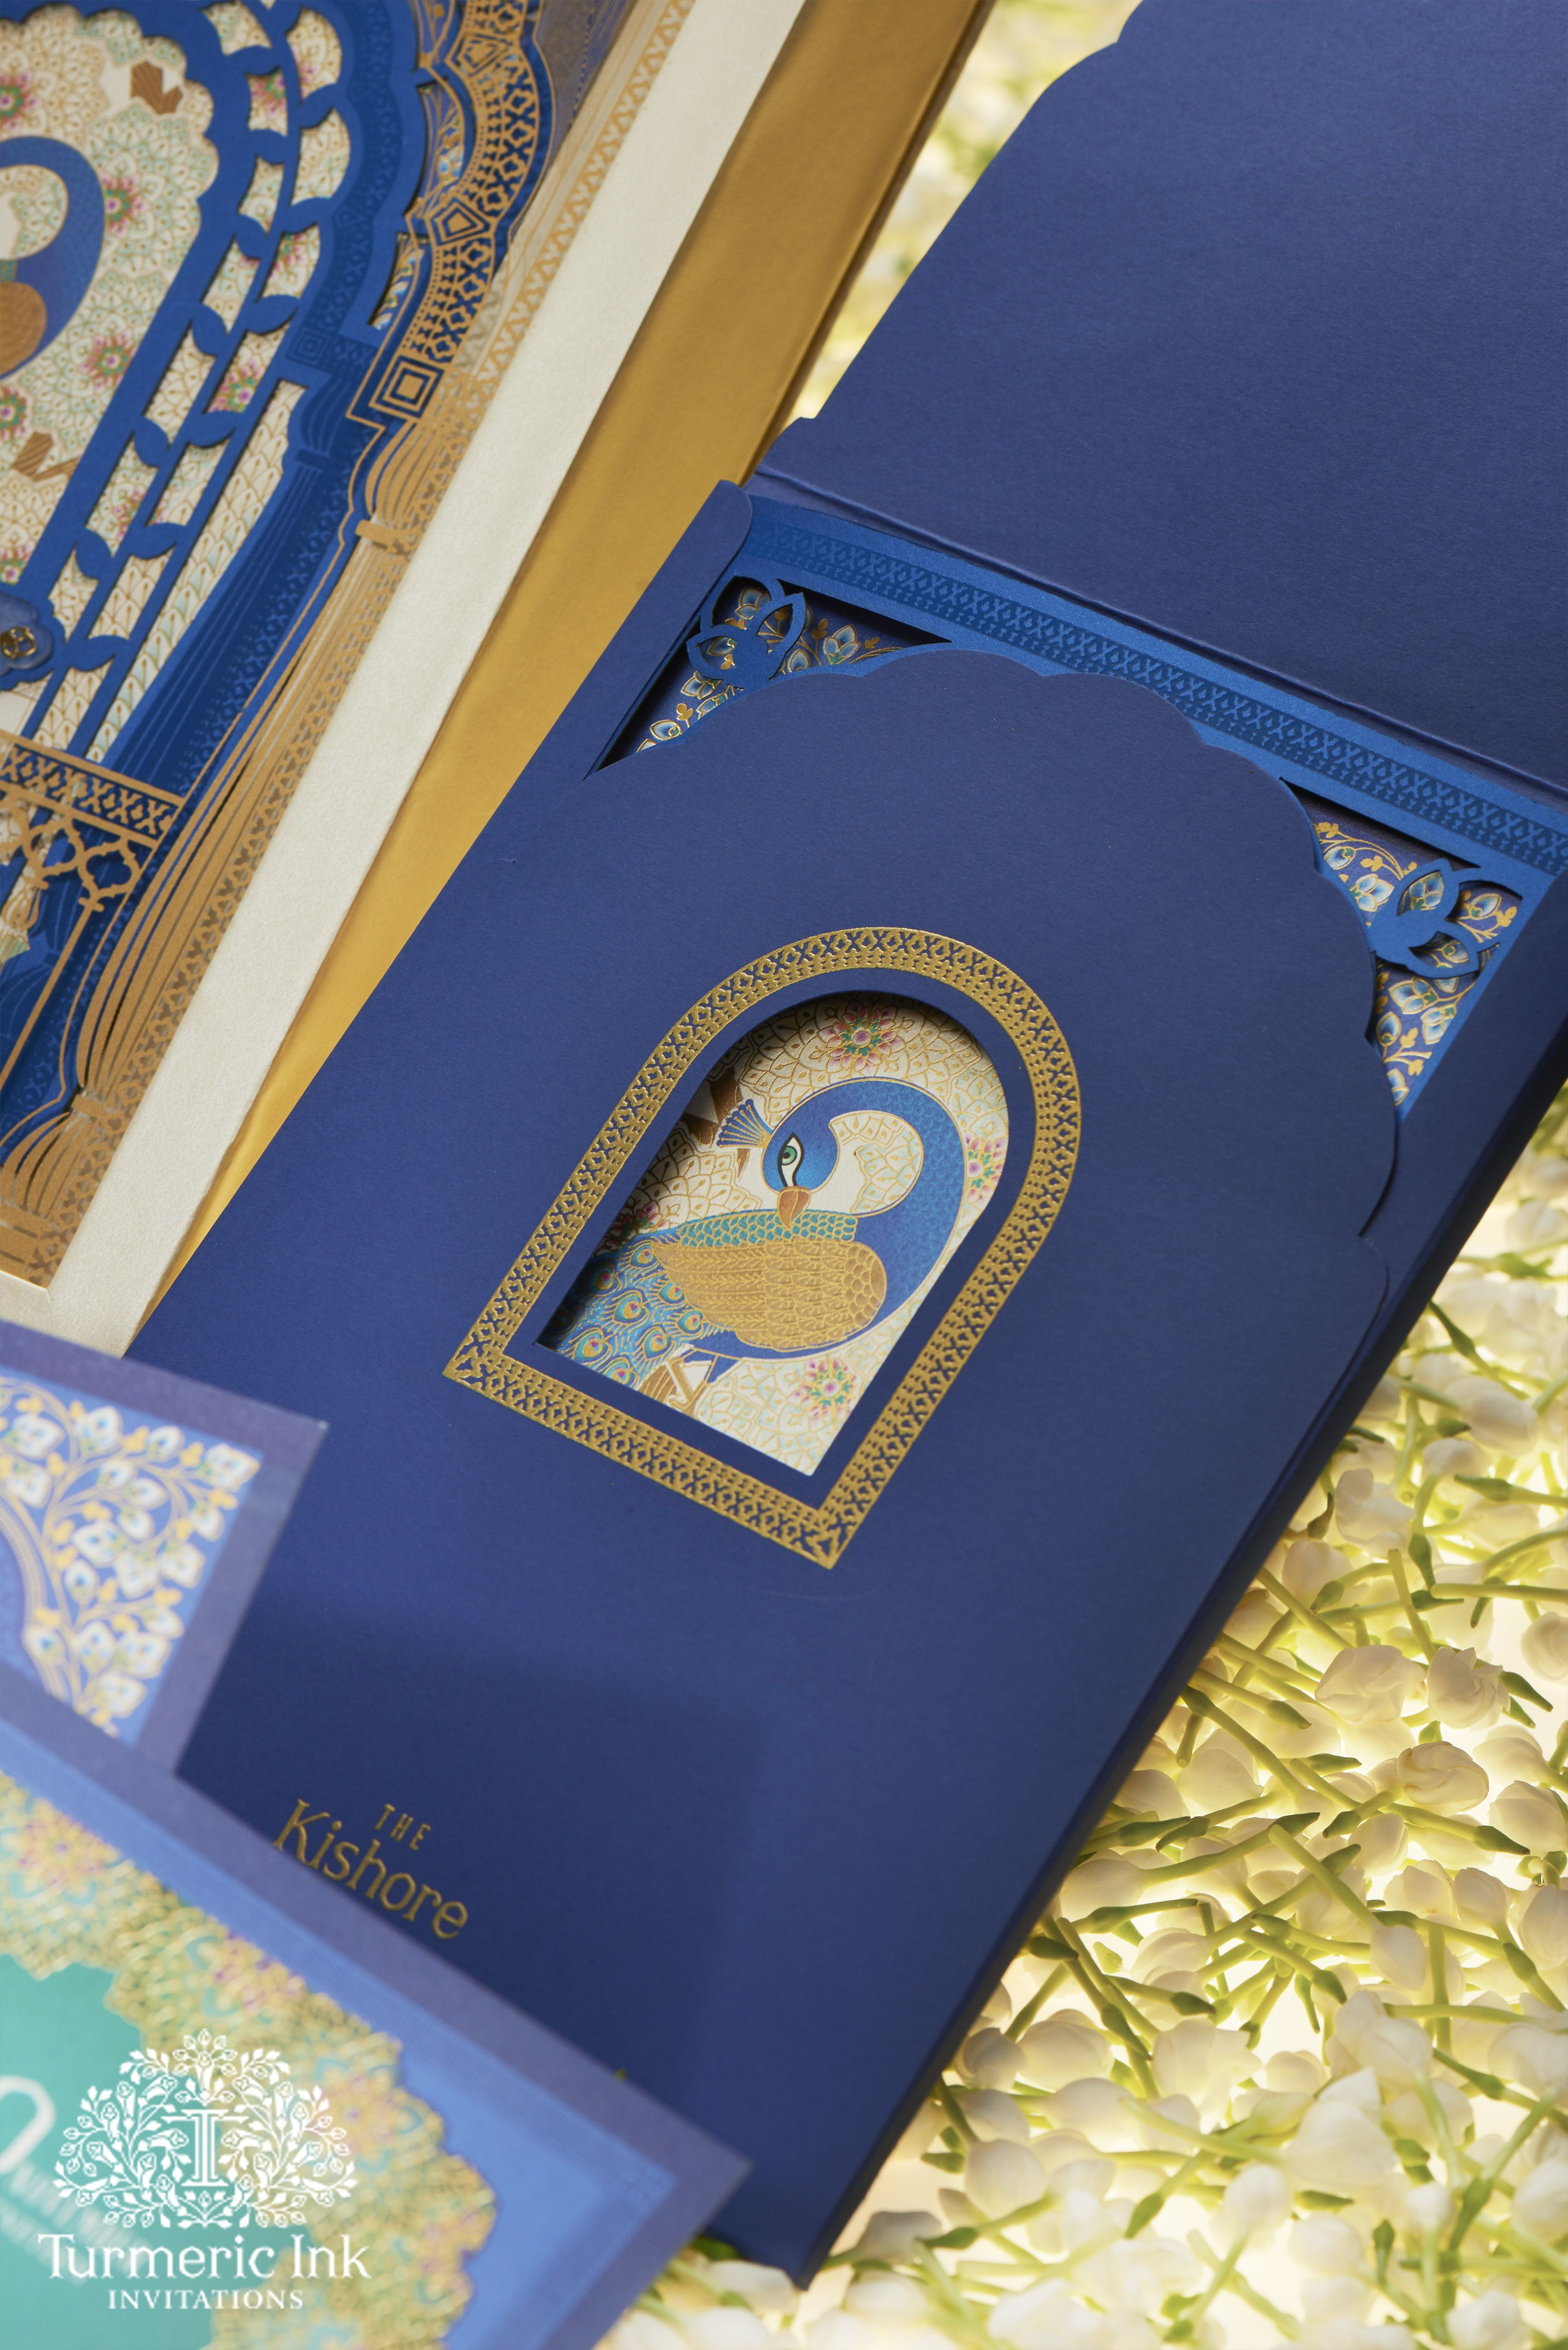 A royal invite designed on the concept of creating